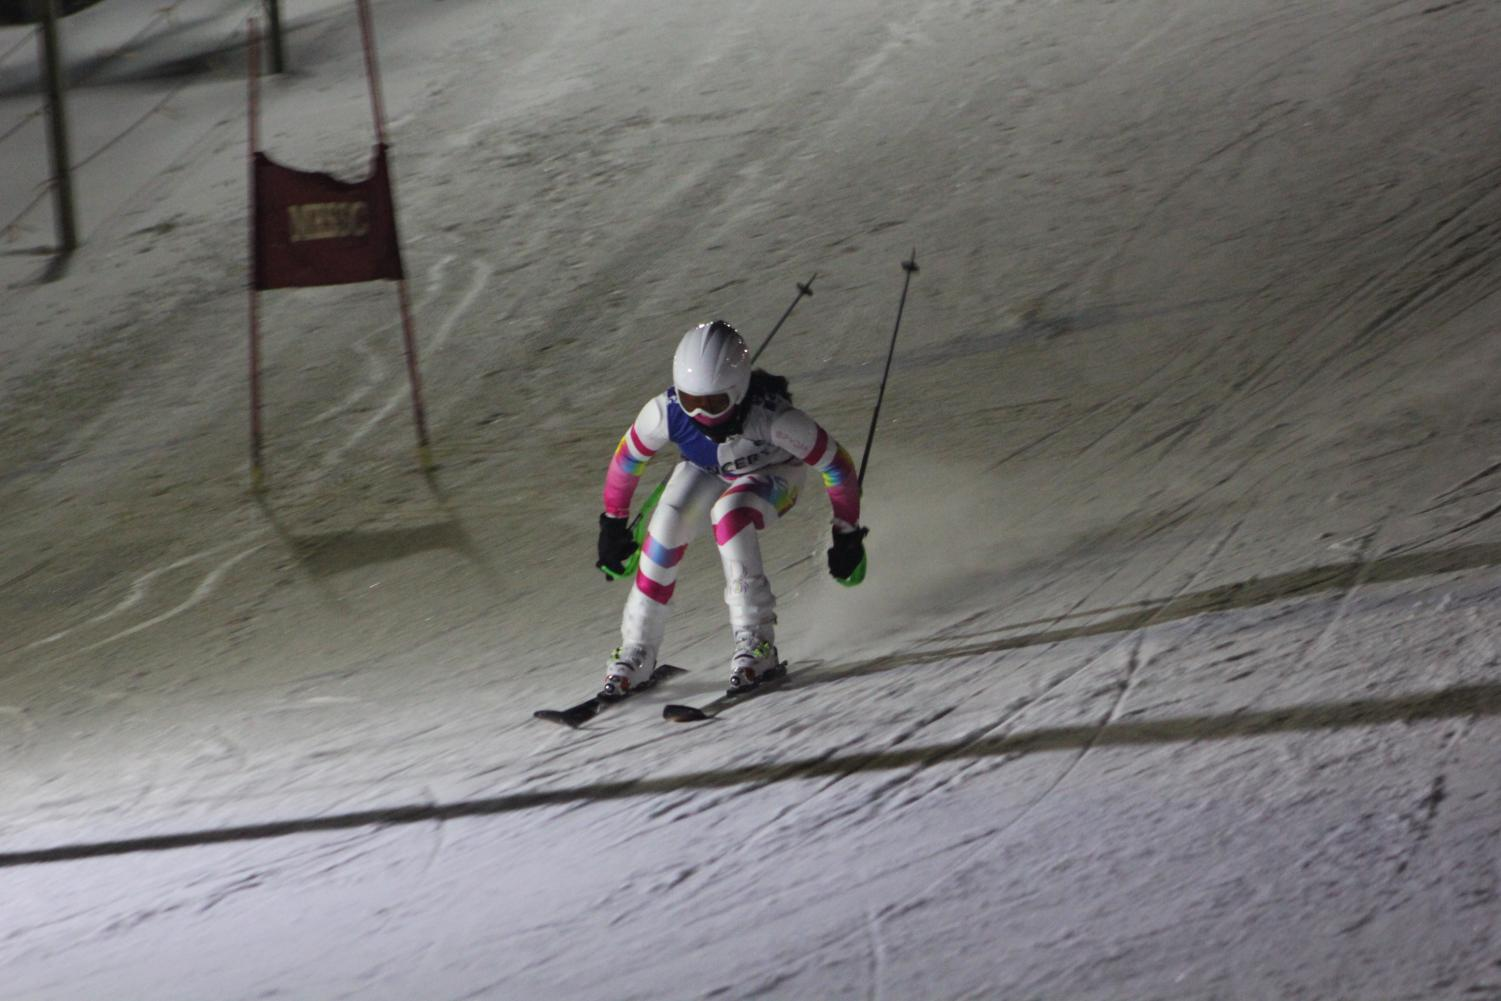 Lili del Campo ('20) participates in a grand slalom event. She has been on the varsity ski team since freshman year and is excited to hit the slopes once again